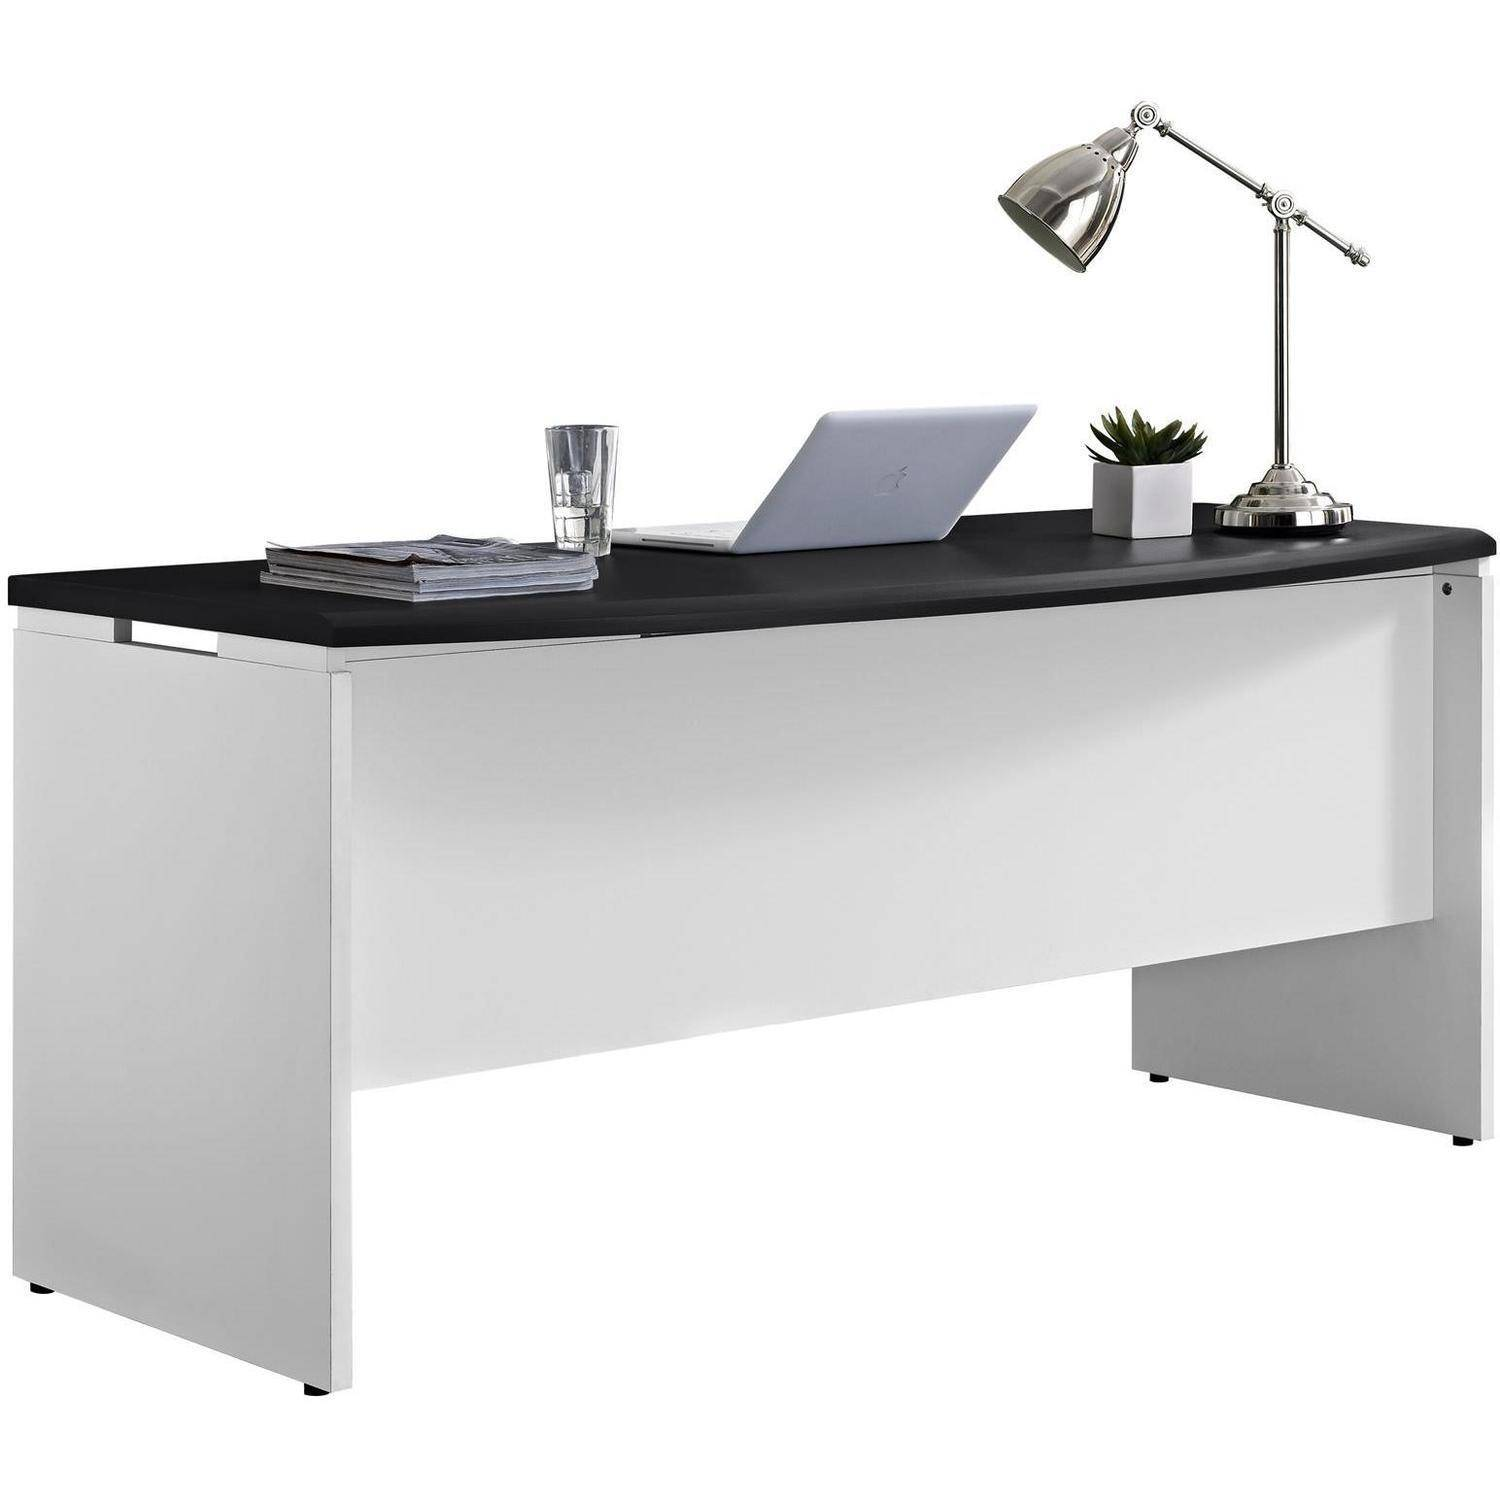 Desk Men Women Home Furniture Pursuit Computer Work Executive White Gray